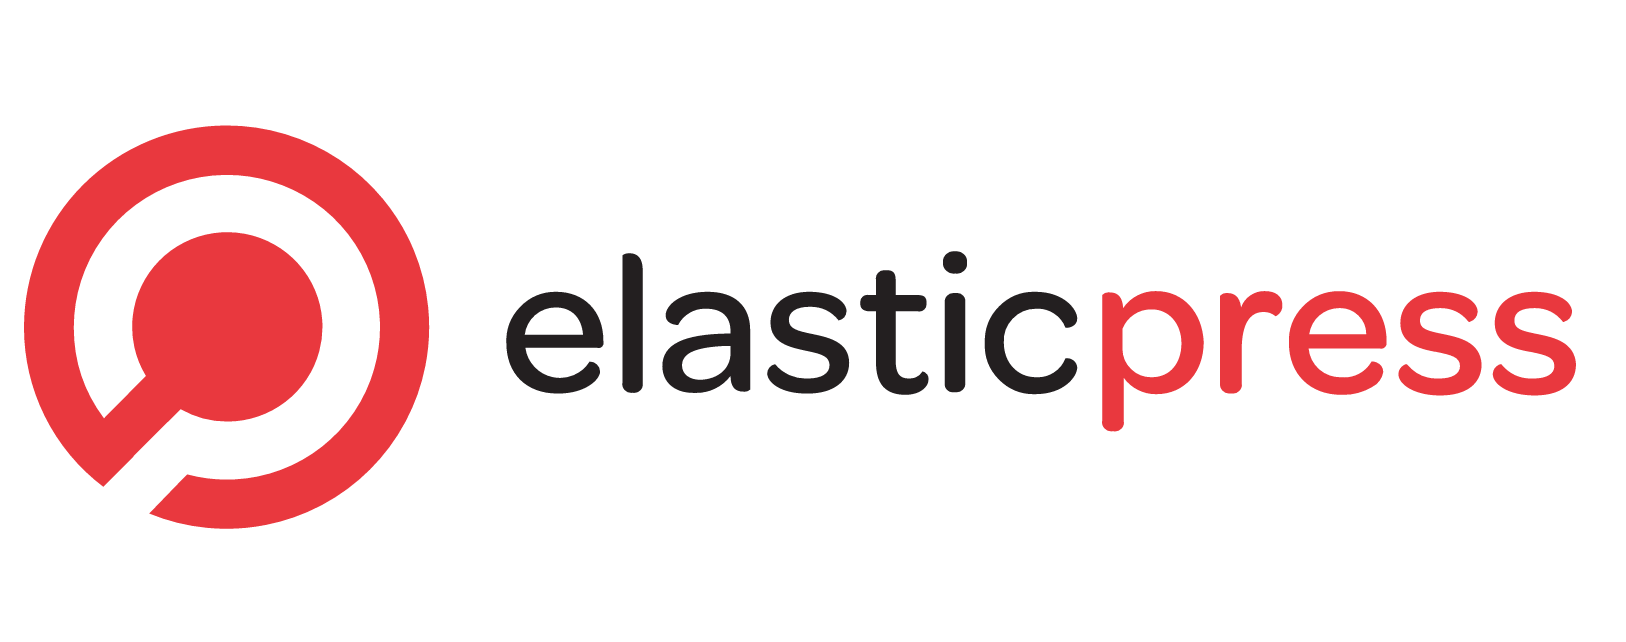 Elastic press logo